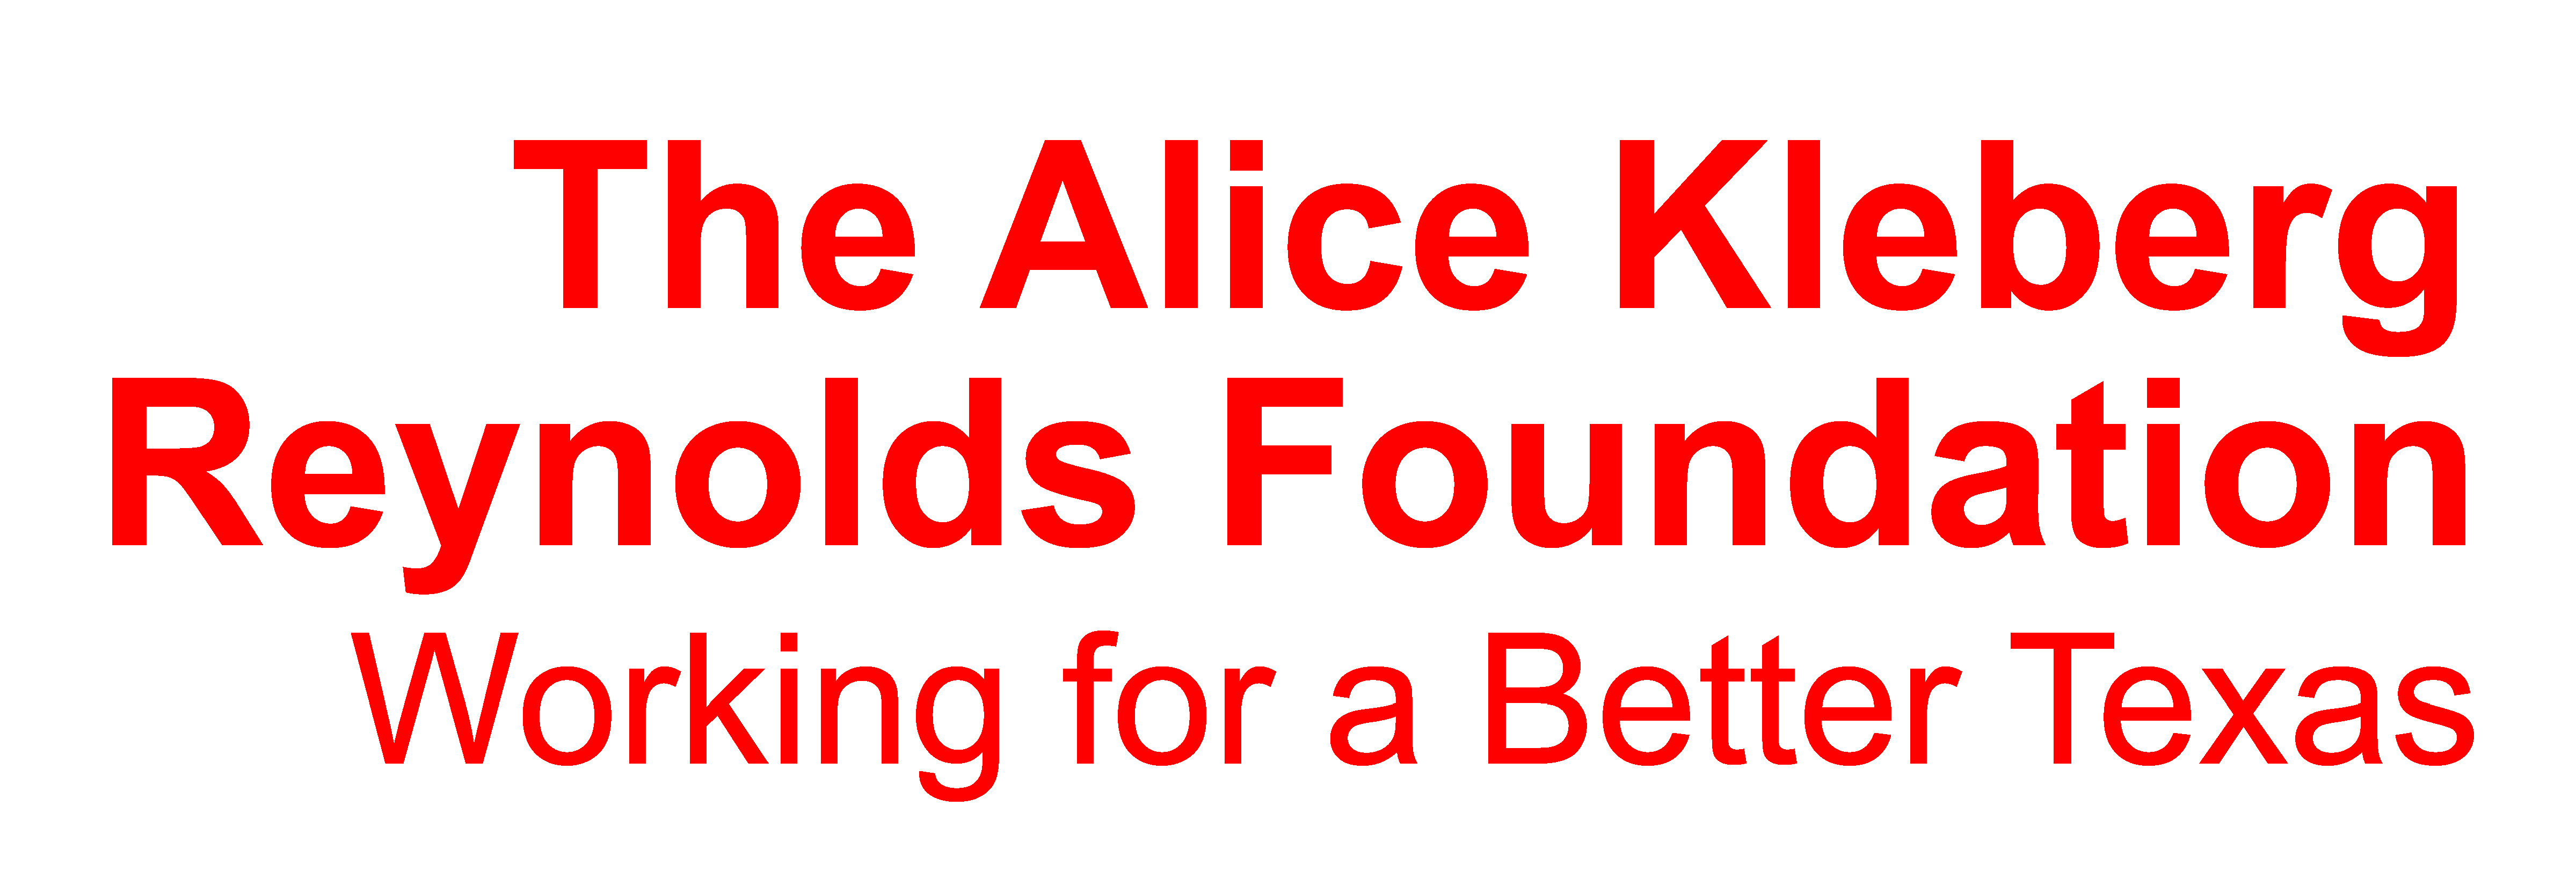 The Alice Kleberg Reynolds Foundation